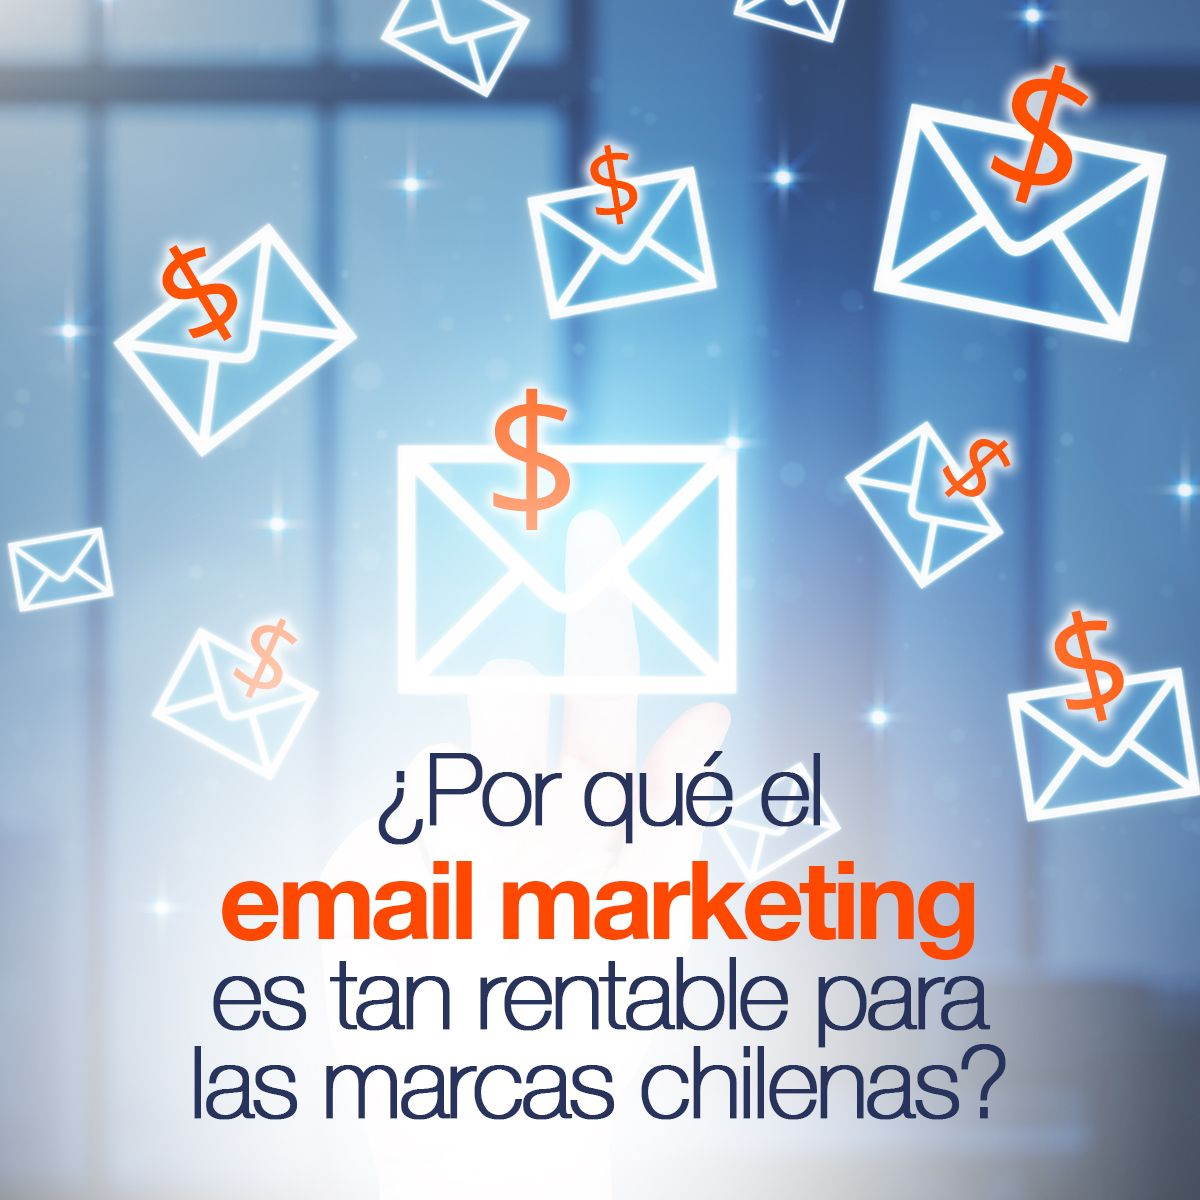 ¿Por qué el email marketing es tan rentable para las marcas chilenas?